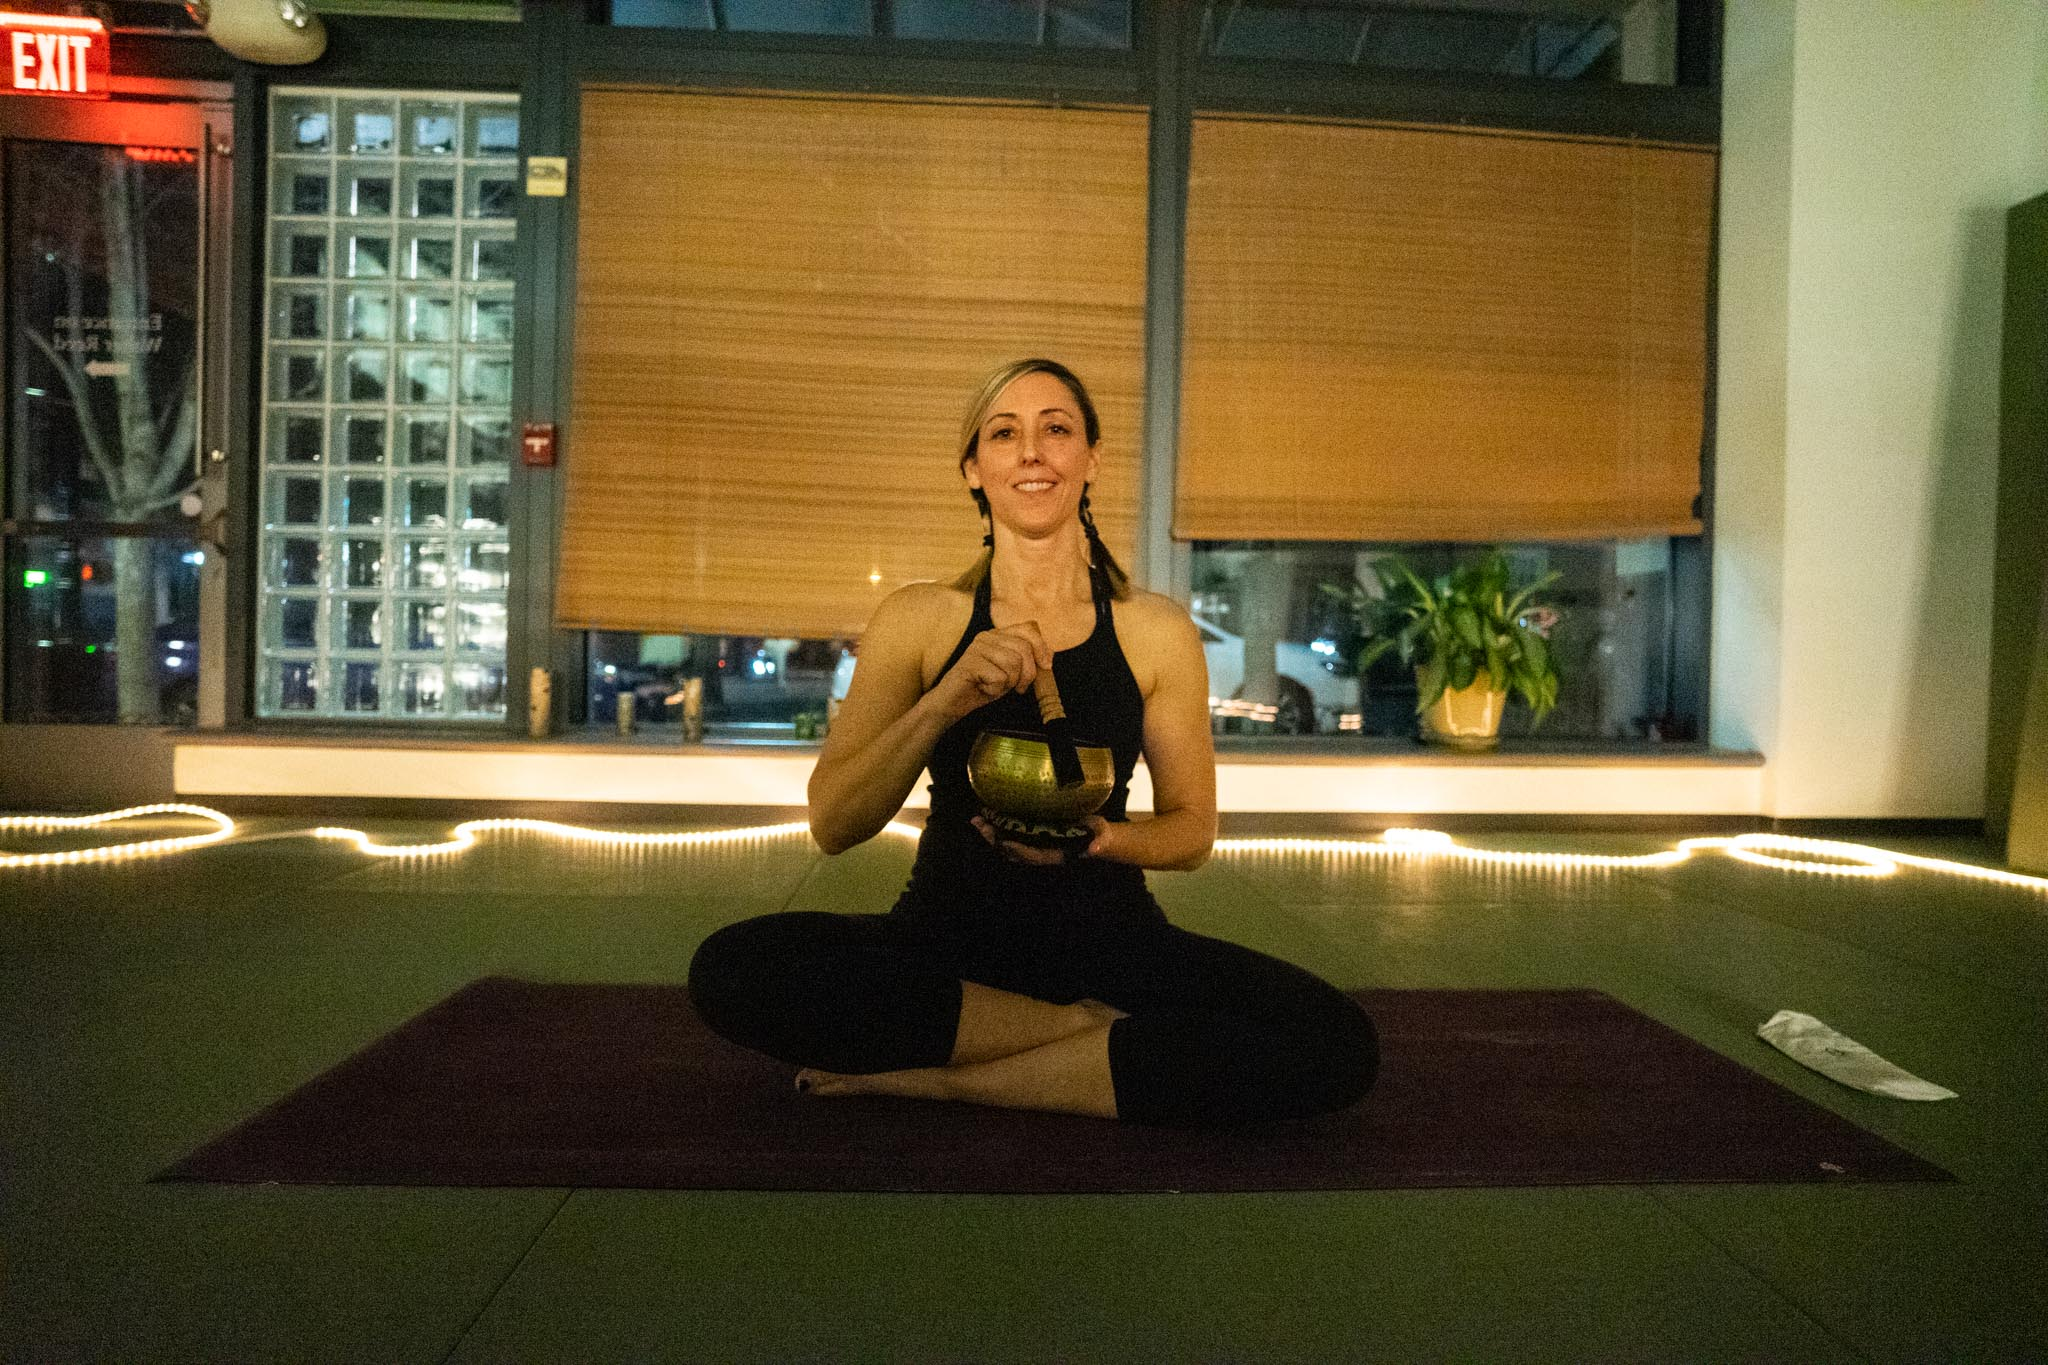 Yoga Teacher, Sarah Zoeller